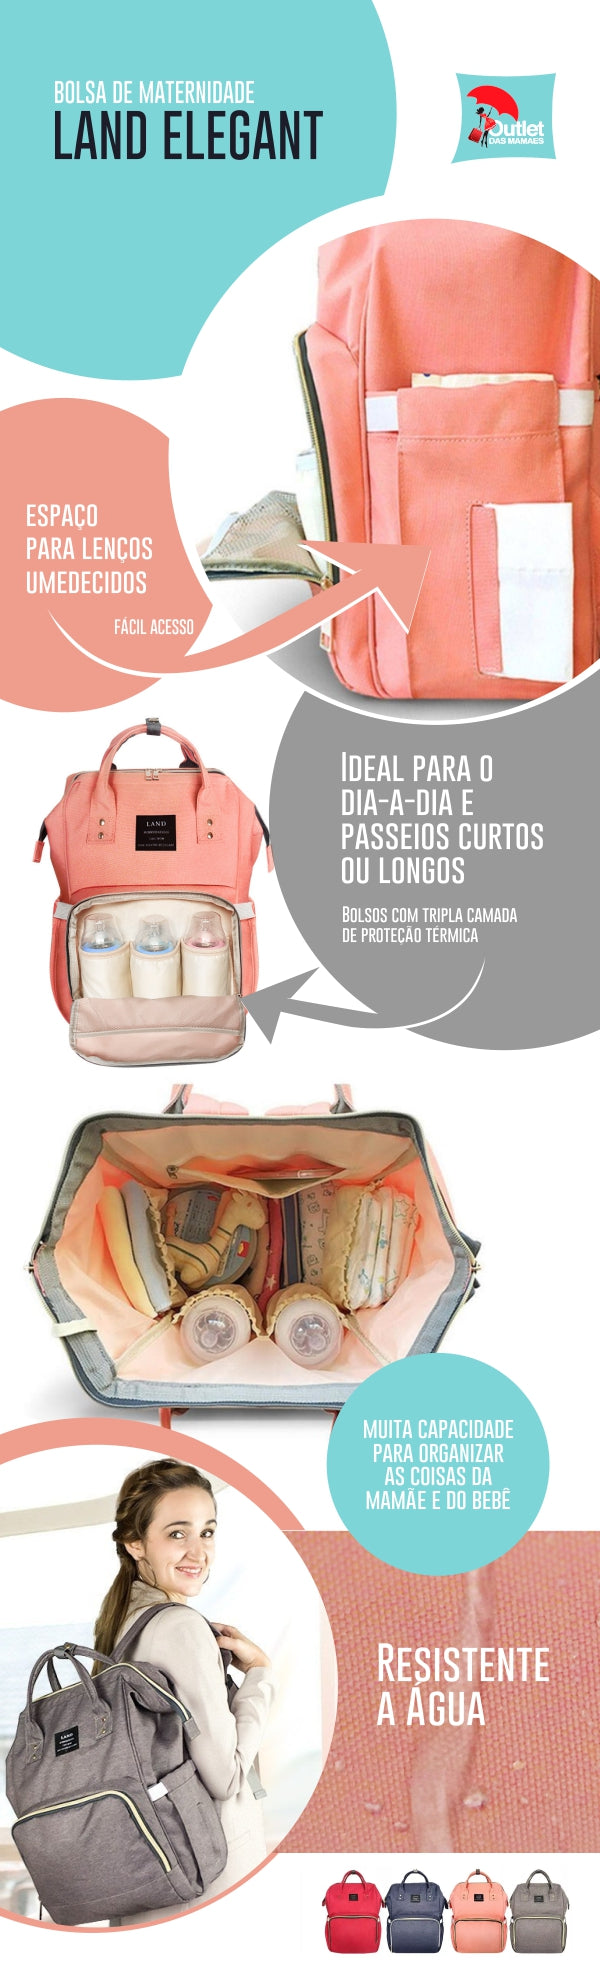 descricao_bolsa_land